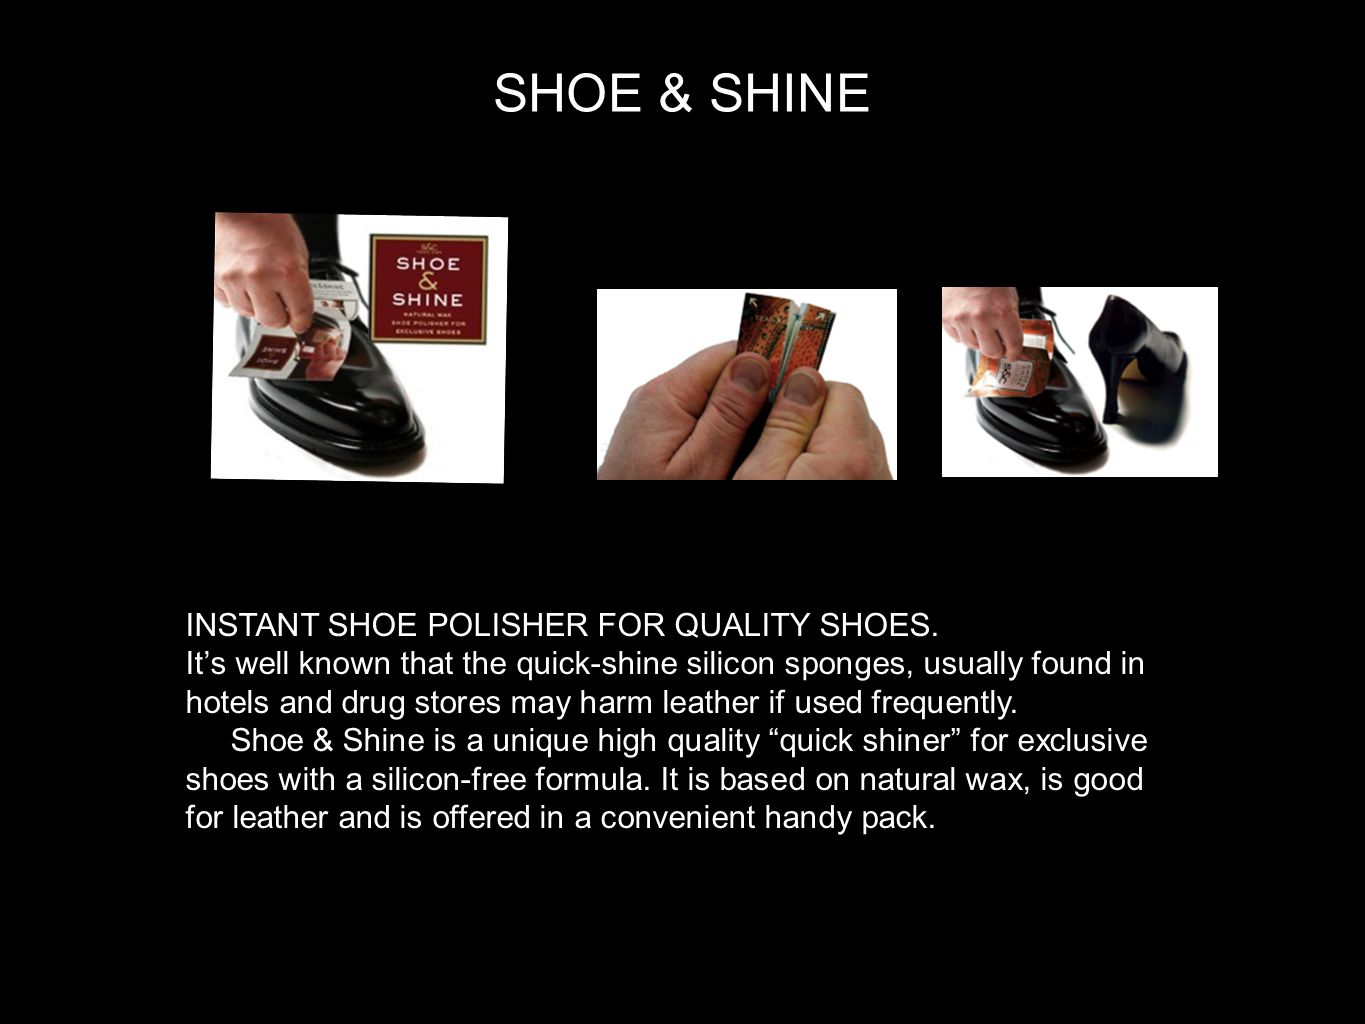 SHOE & SHINE INSTANT SHOE POLISHER FOR QUALITY SHOES.